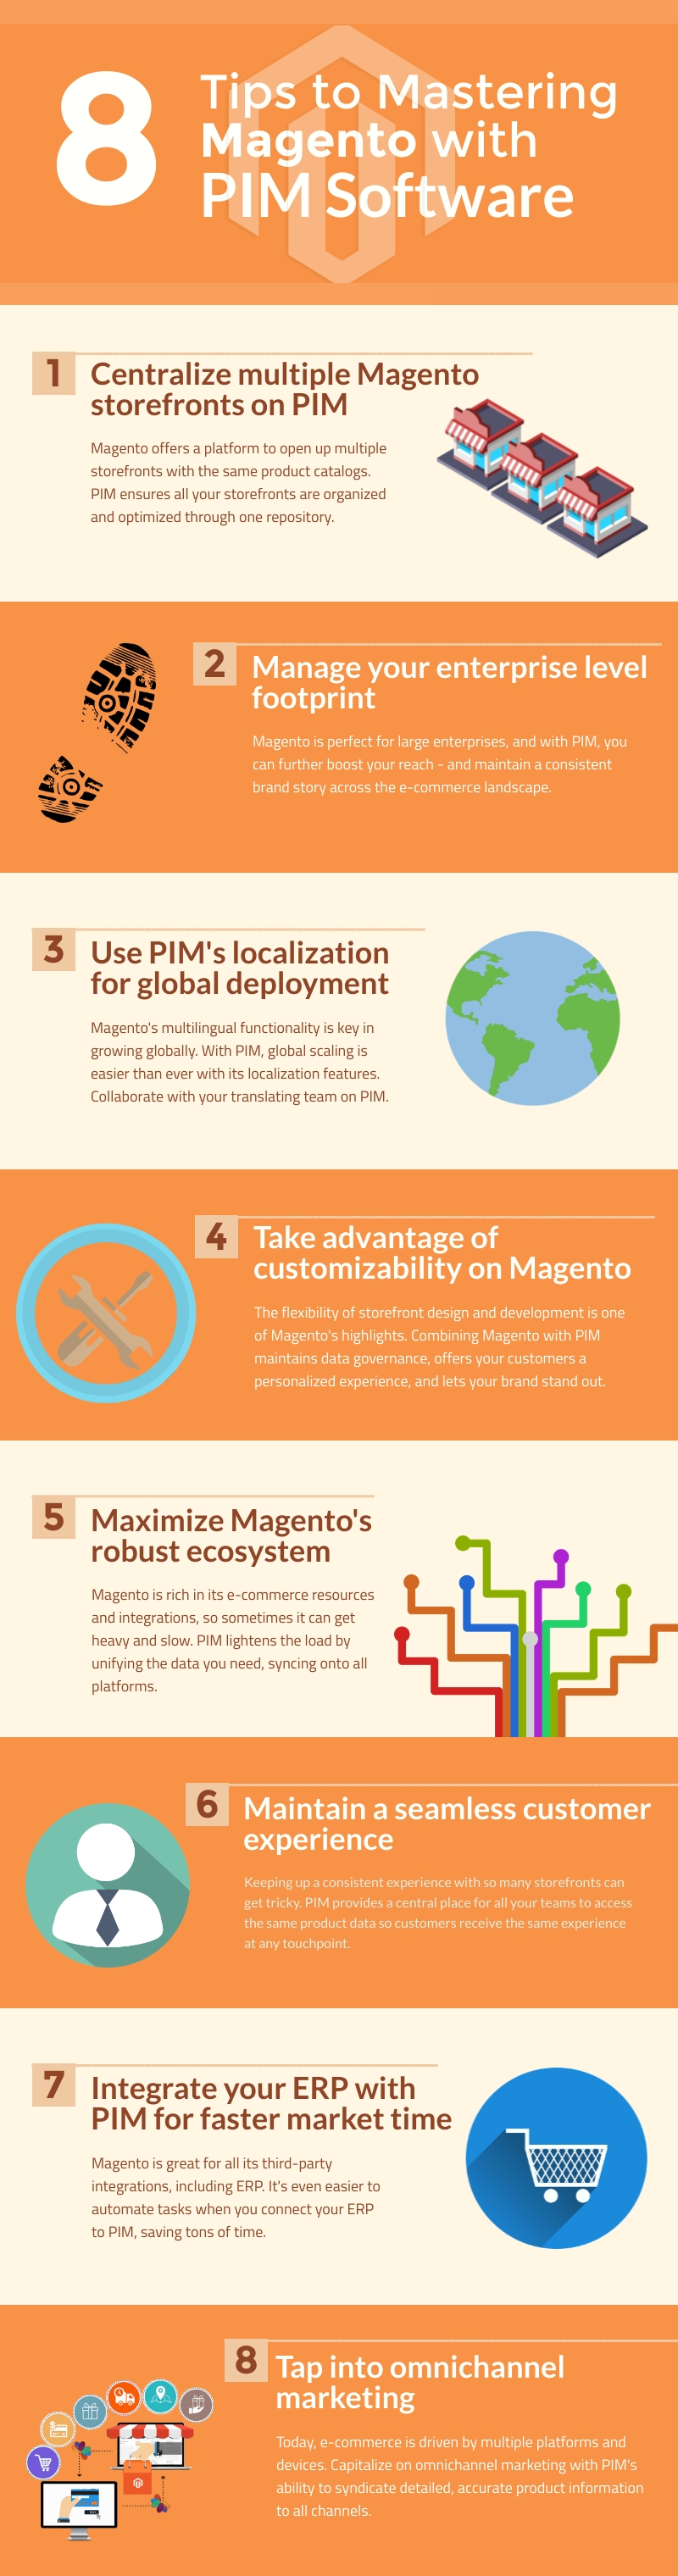 infographic-7-ways-to-master-magento-with-pim